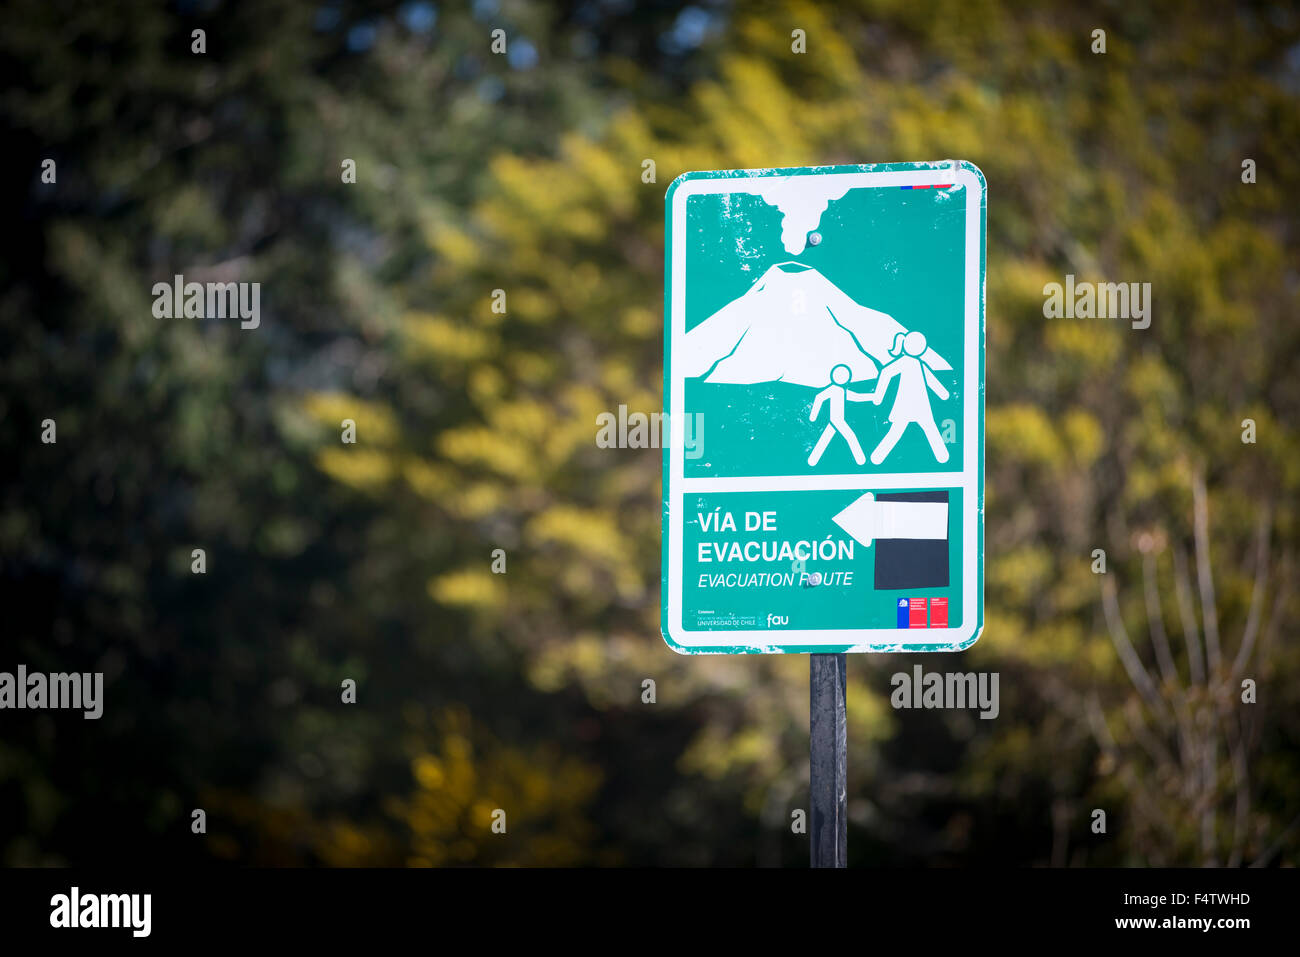 evacuation, information, volcano activity.  Region de los Lagos. Stock Photo